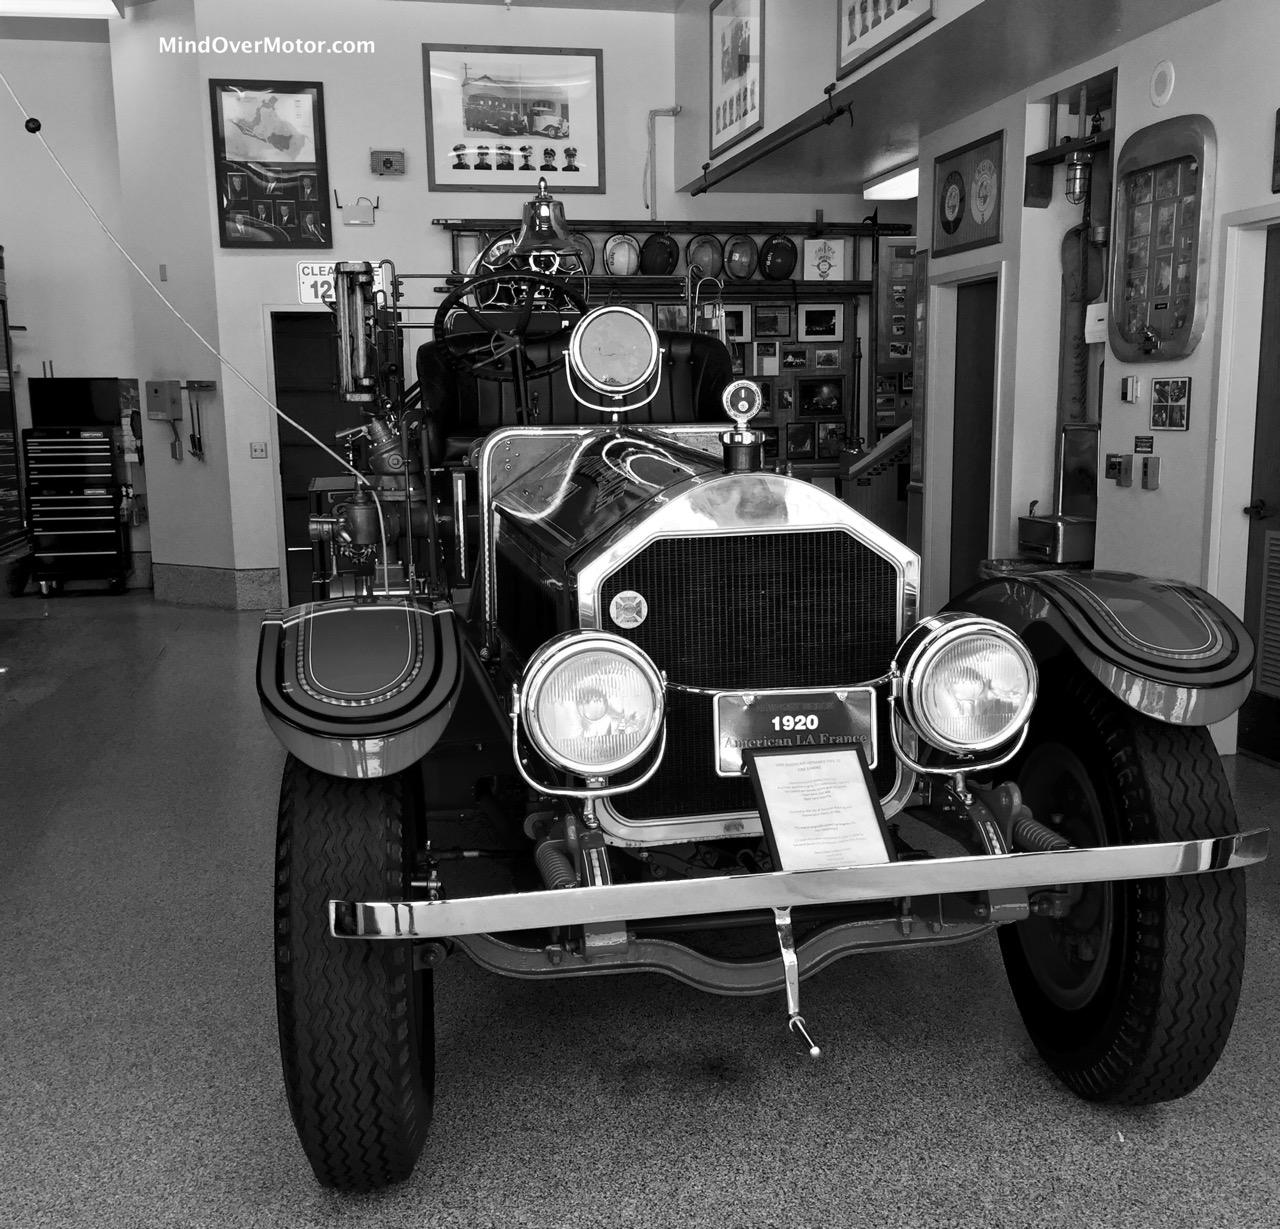 1920 American LaFrance Front